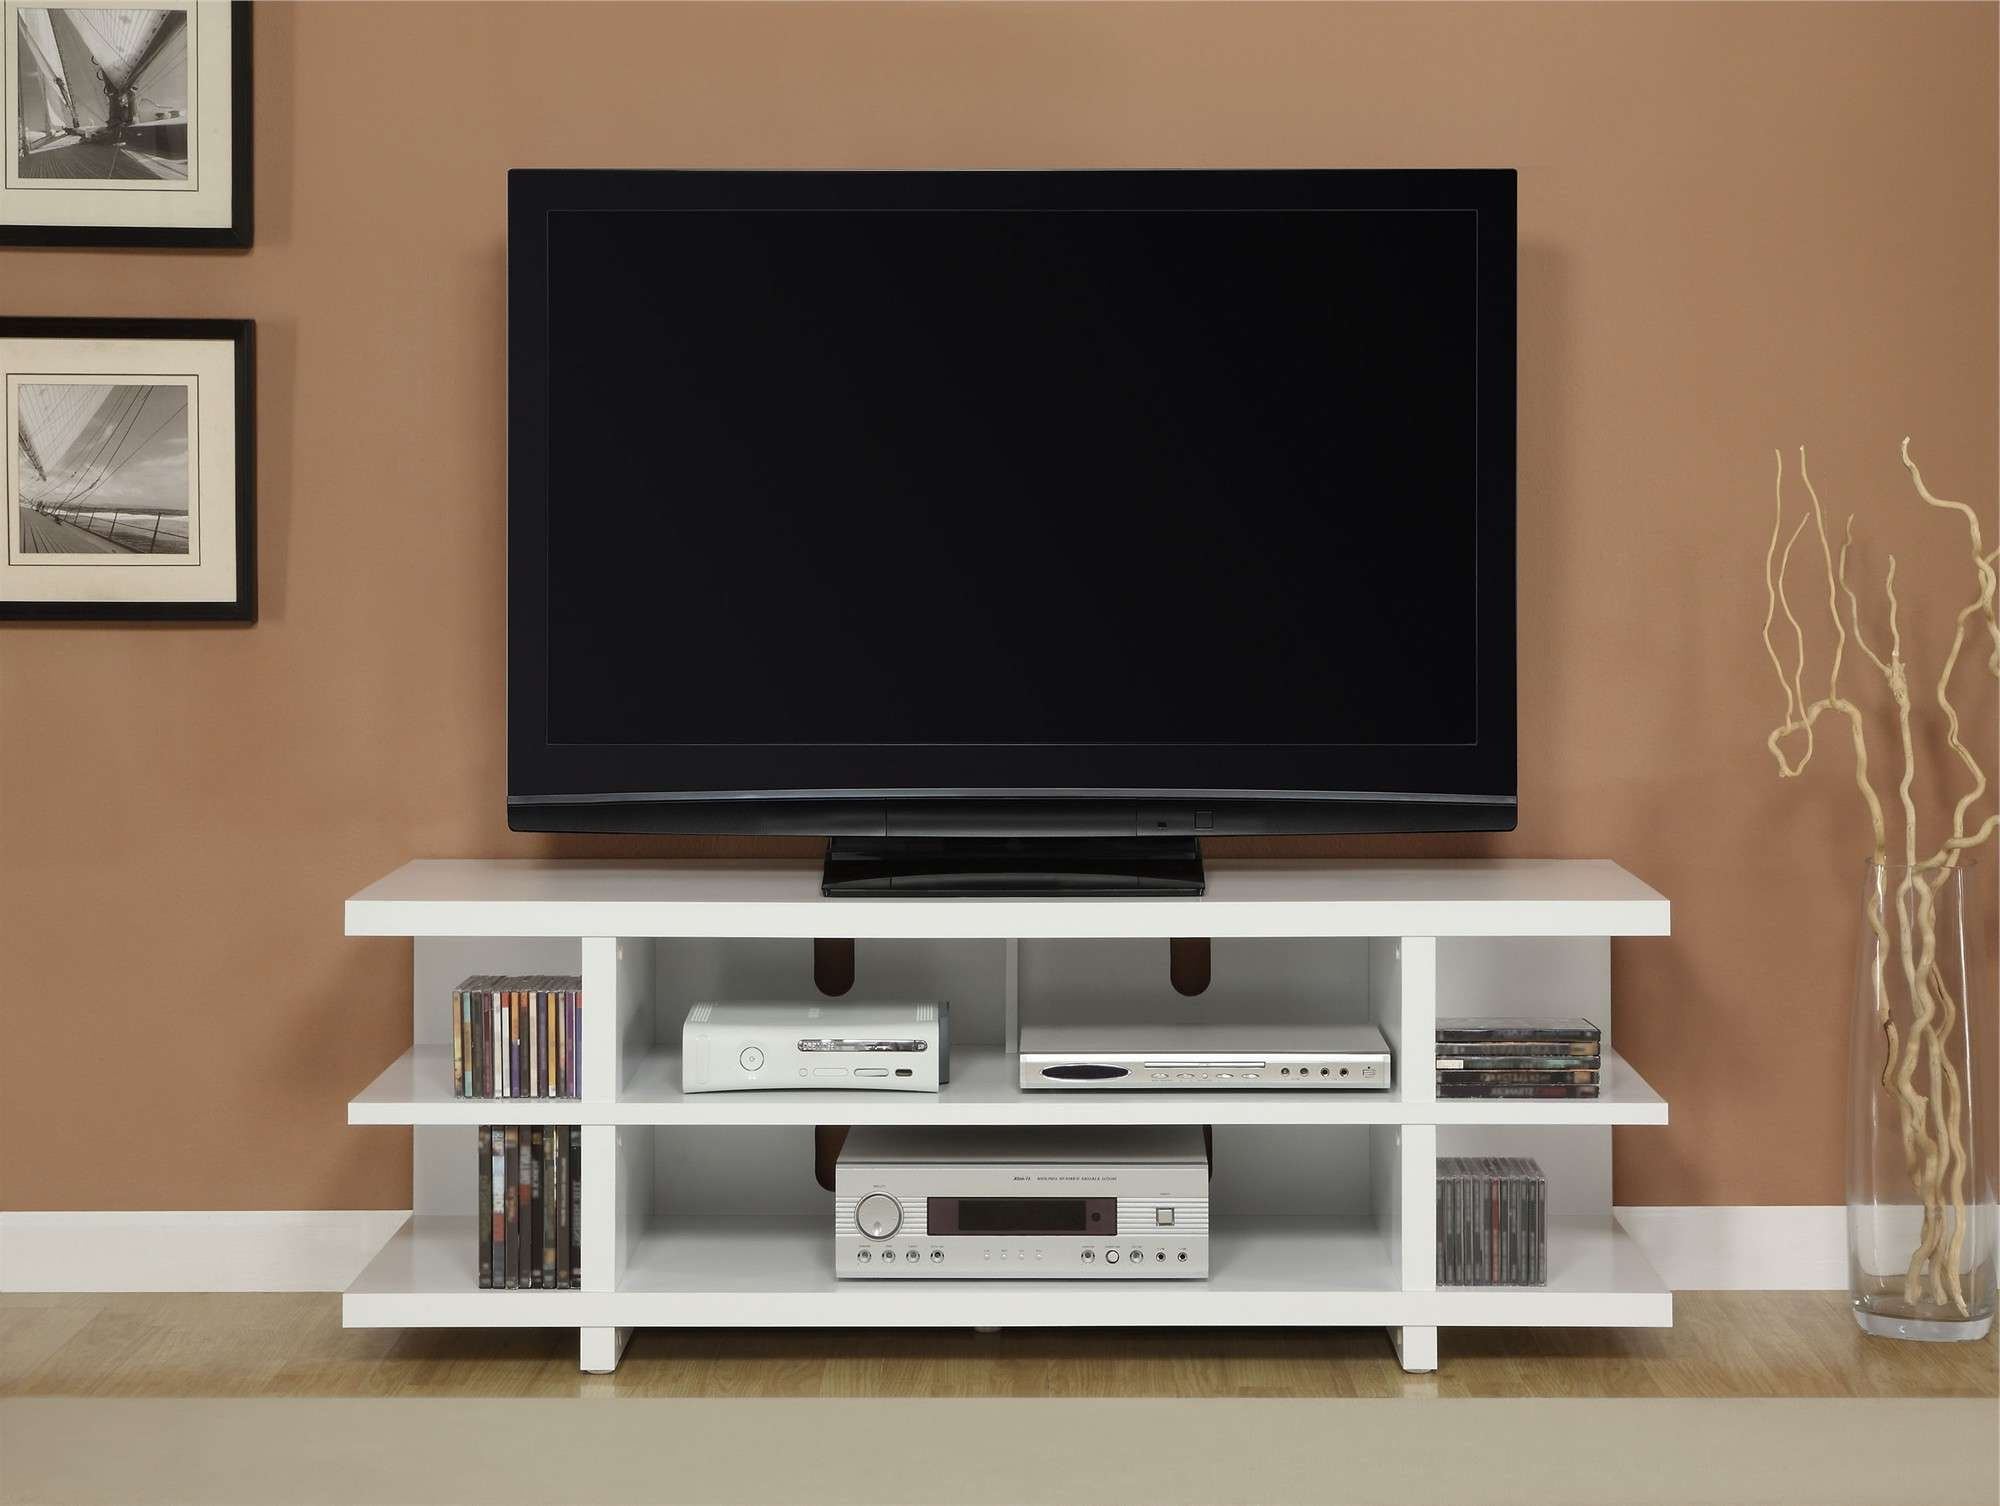 White Stained Wooden Tv Stand Having Several Open Shelves For In Modern Tv Stands For Flat Screens (View 2 of 15)